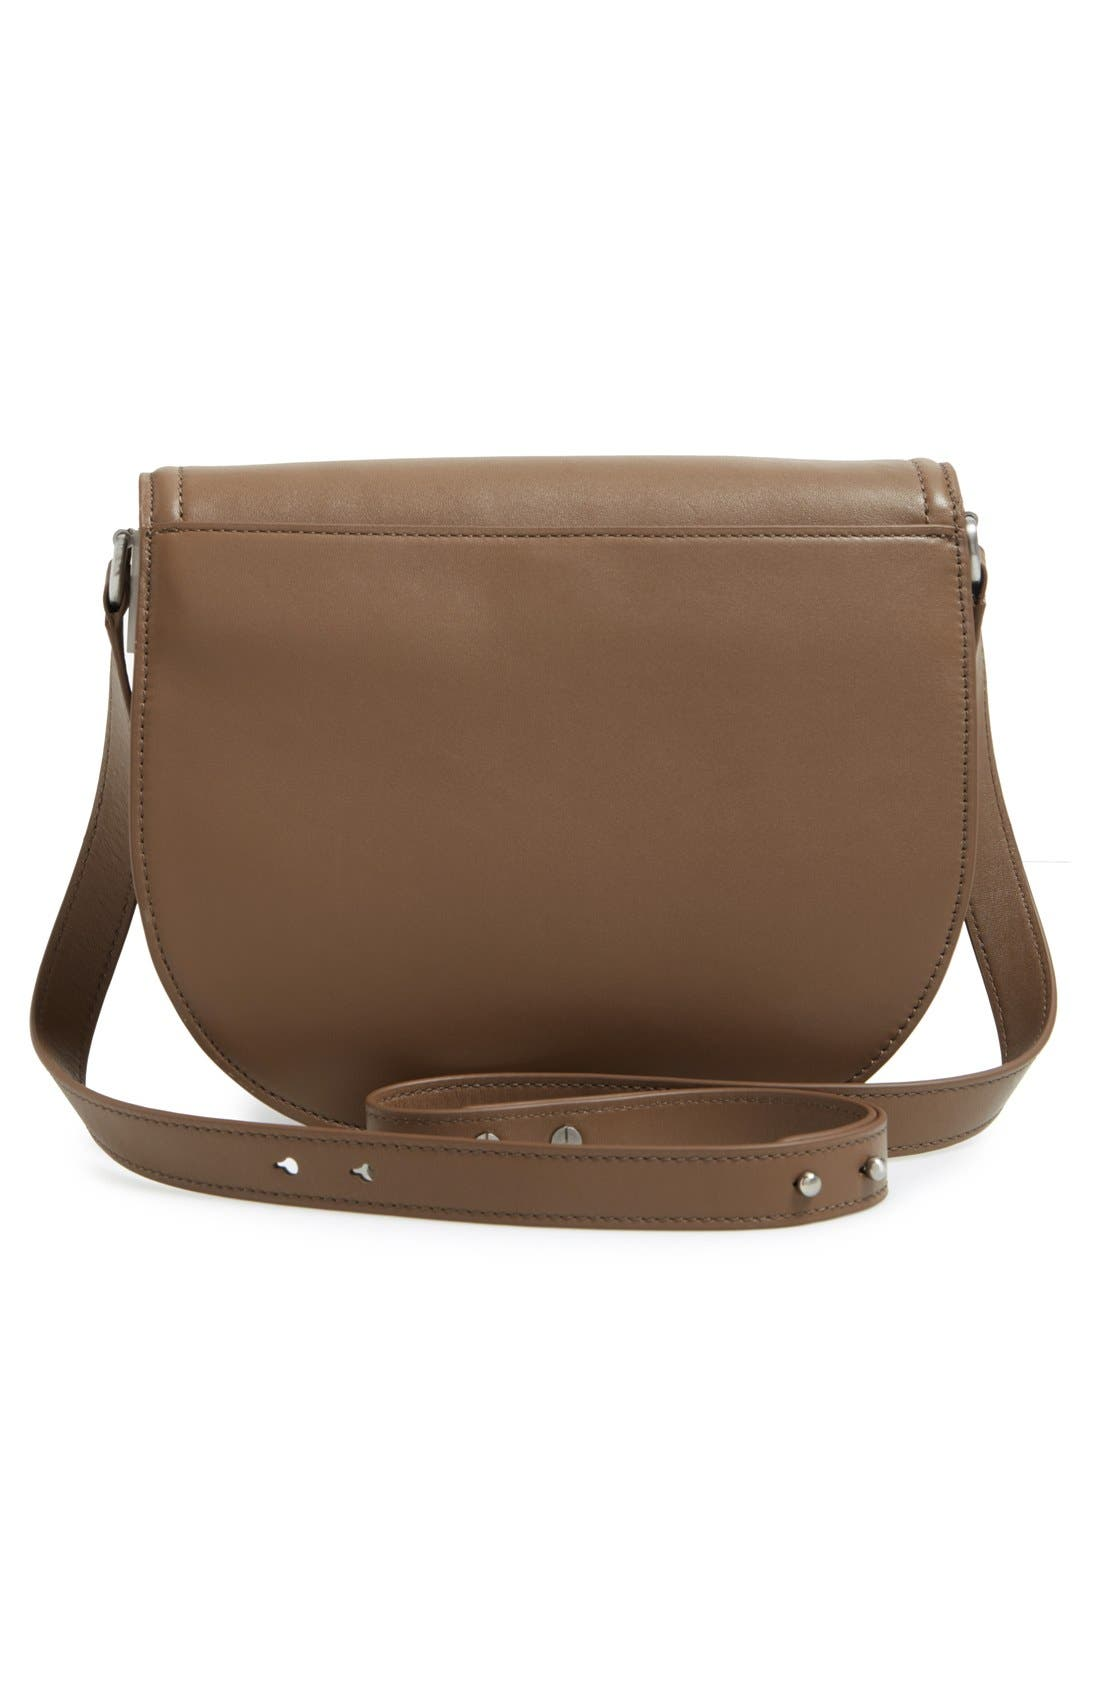 Alternate Image 3  - Loeffler Randall 'Large' Leather Saddle Bag